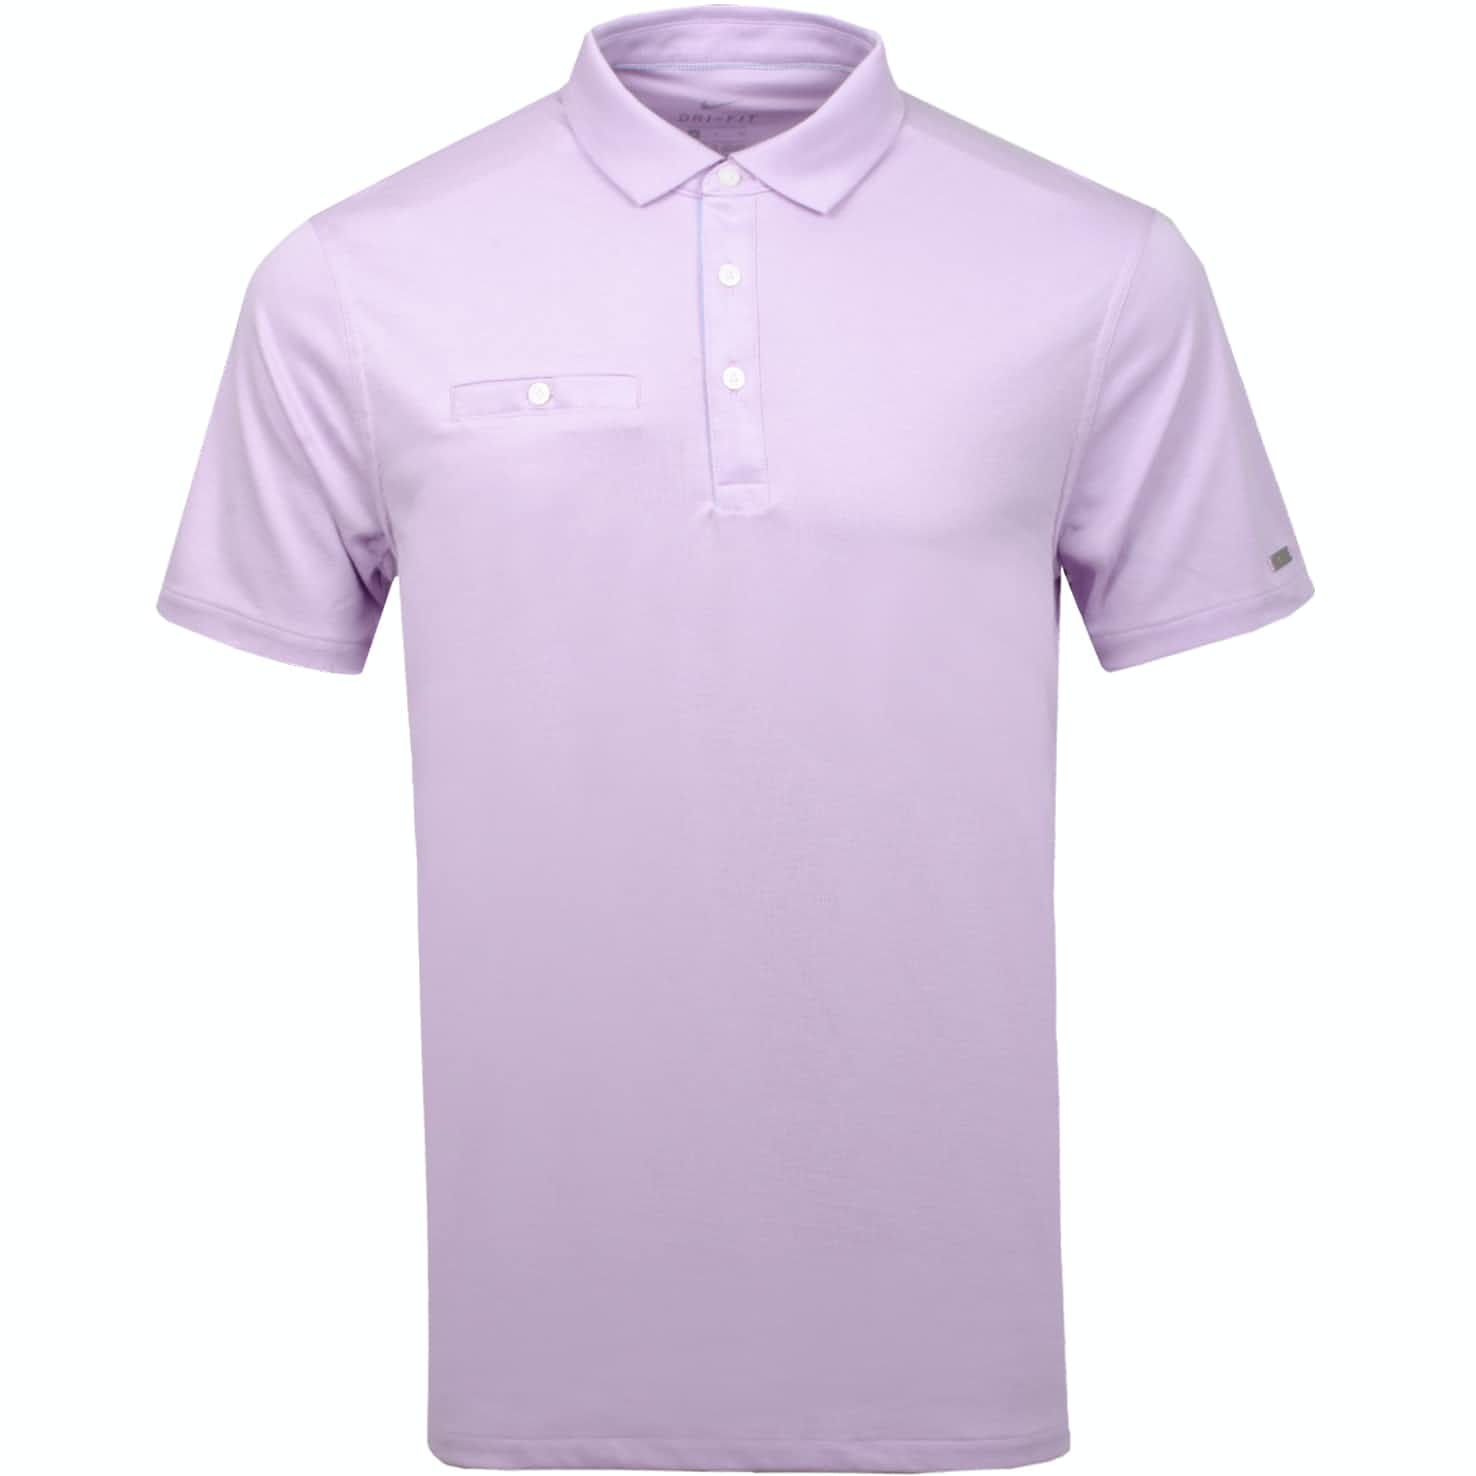 Dri-Fit Player Solid Polo Lilac Mist/Brushed Silver - Summer 19